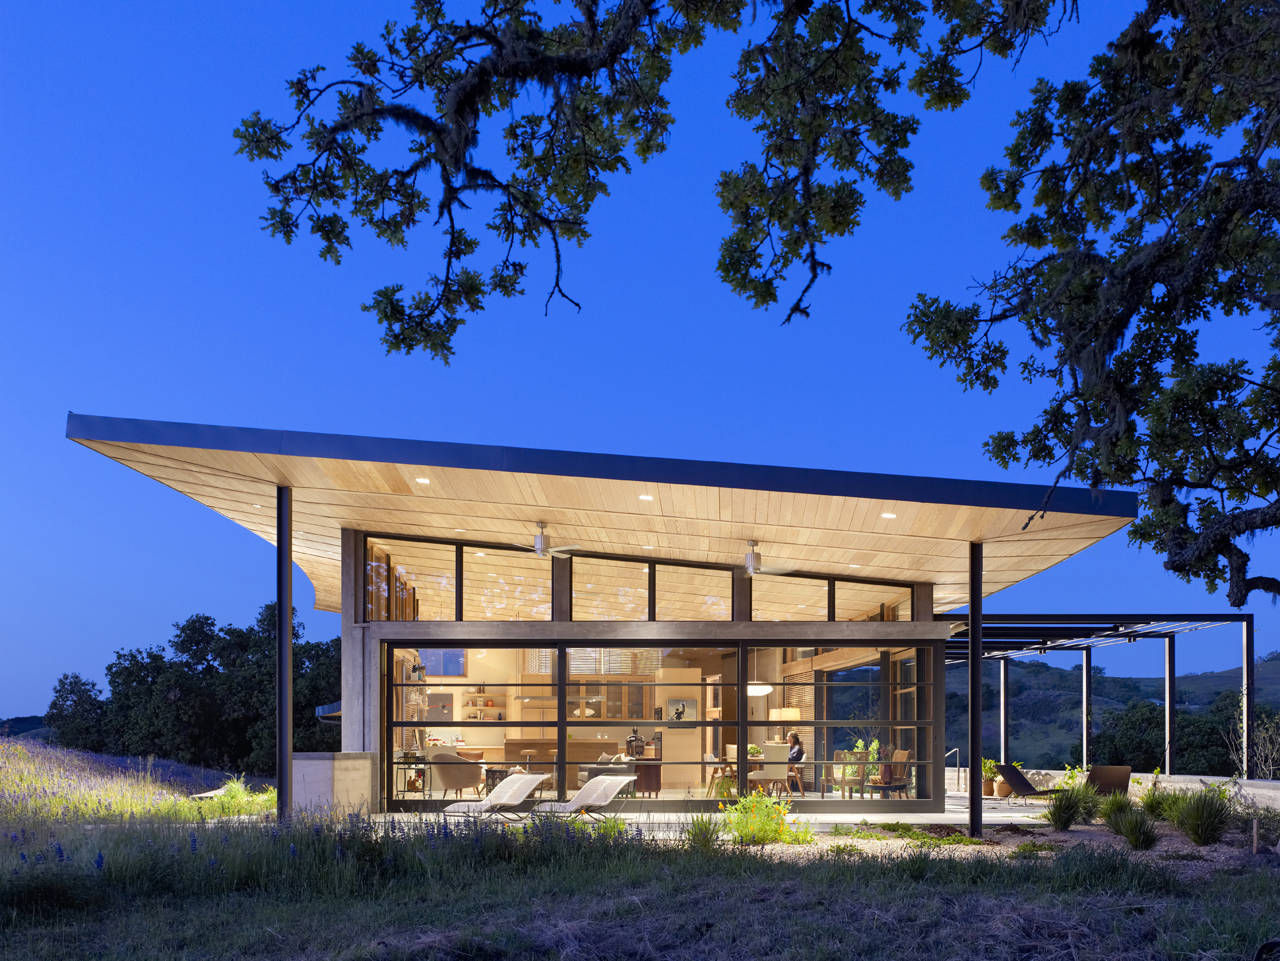 Caterpillar house in carmel california by feldman architecture - California ranch style house plans ideas ...